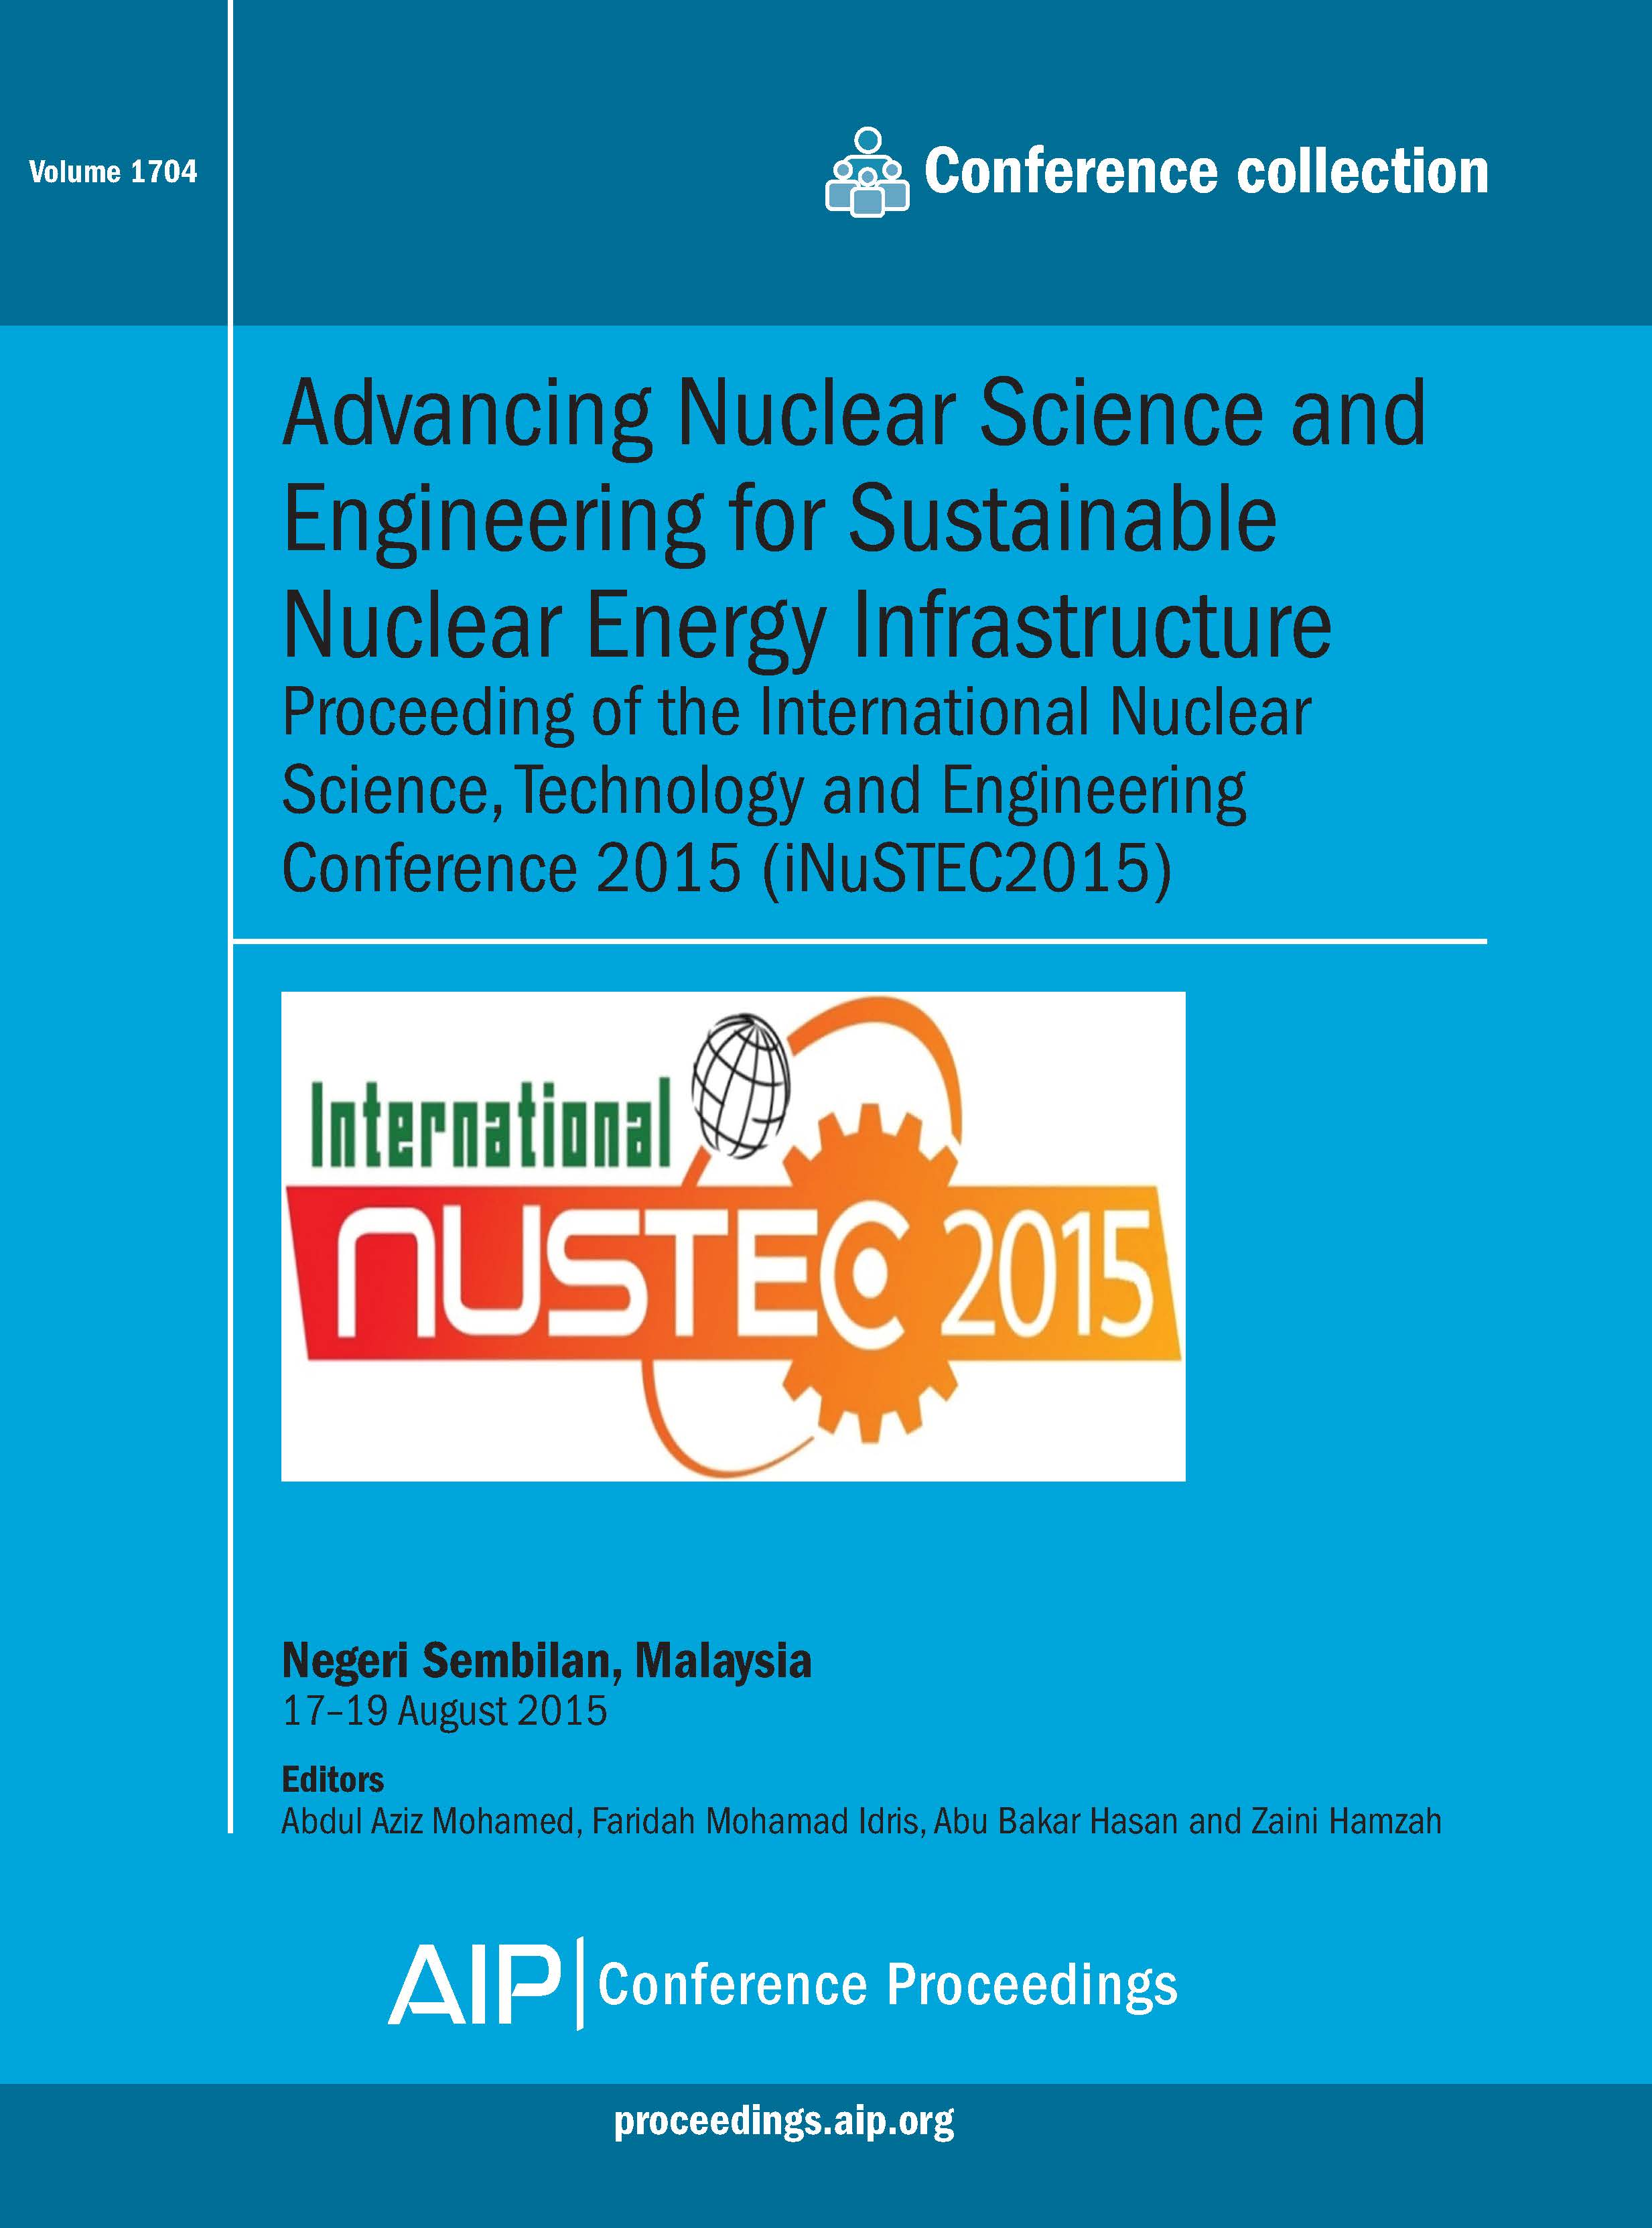 Volume 1704: Advancing Nuclear Science and Engineering for